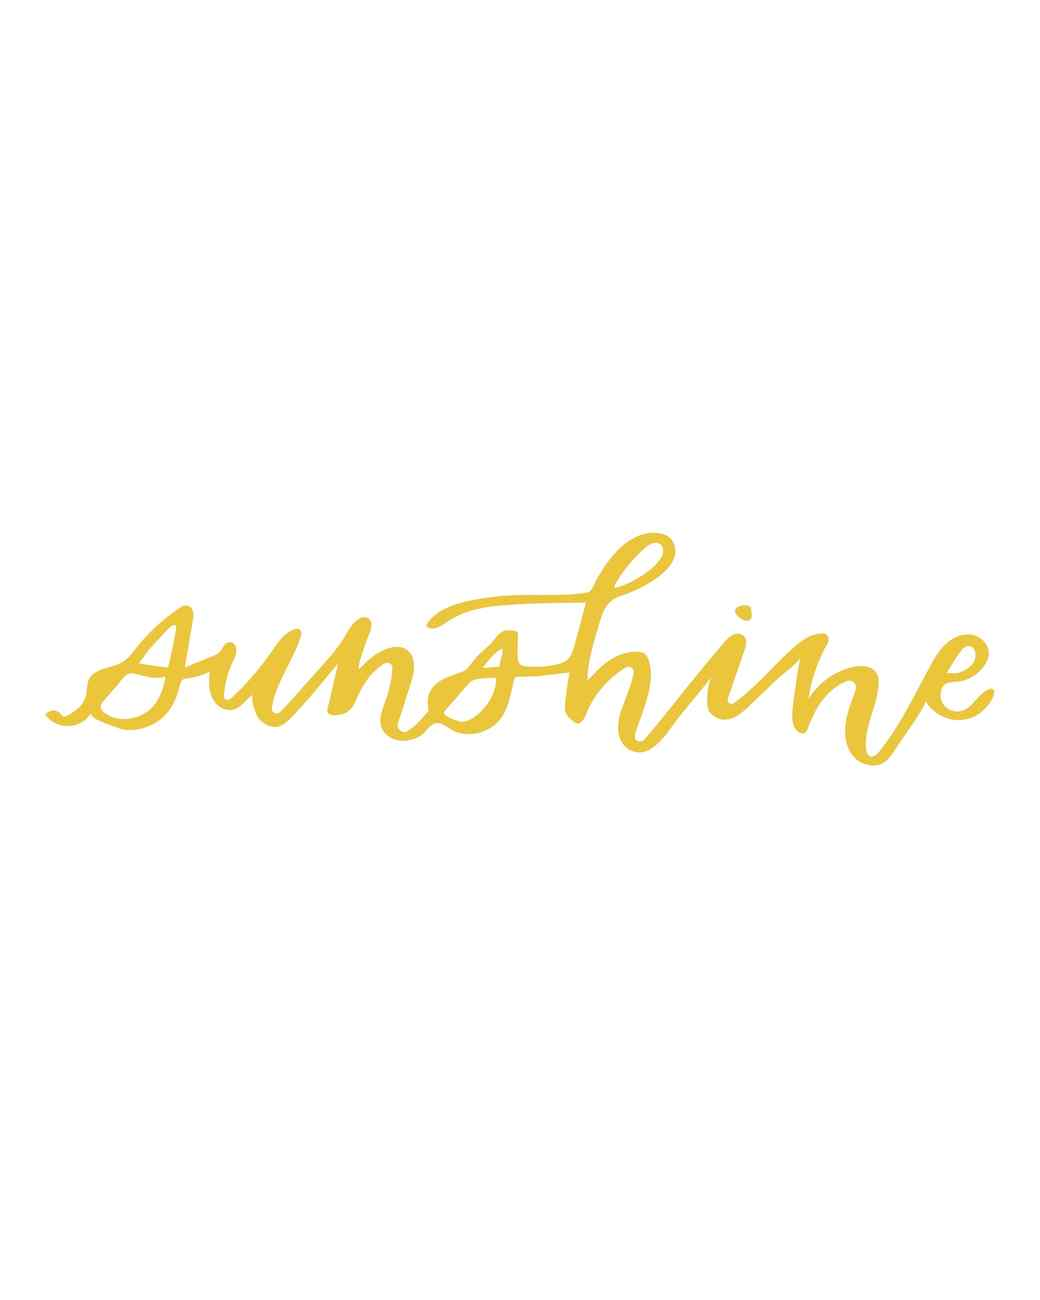 """sunshine"" calligraphy"